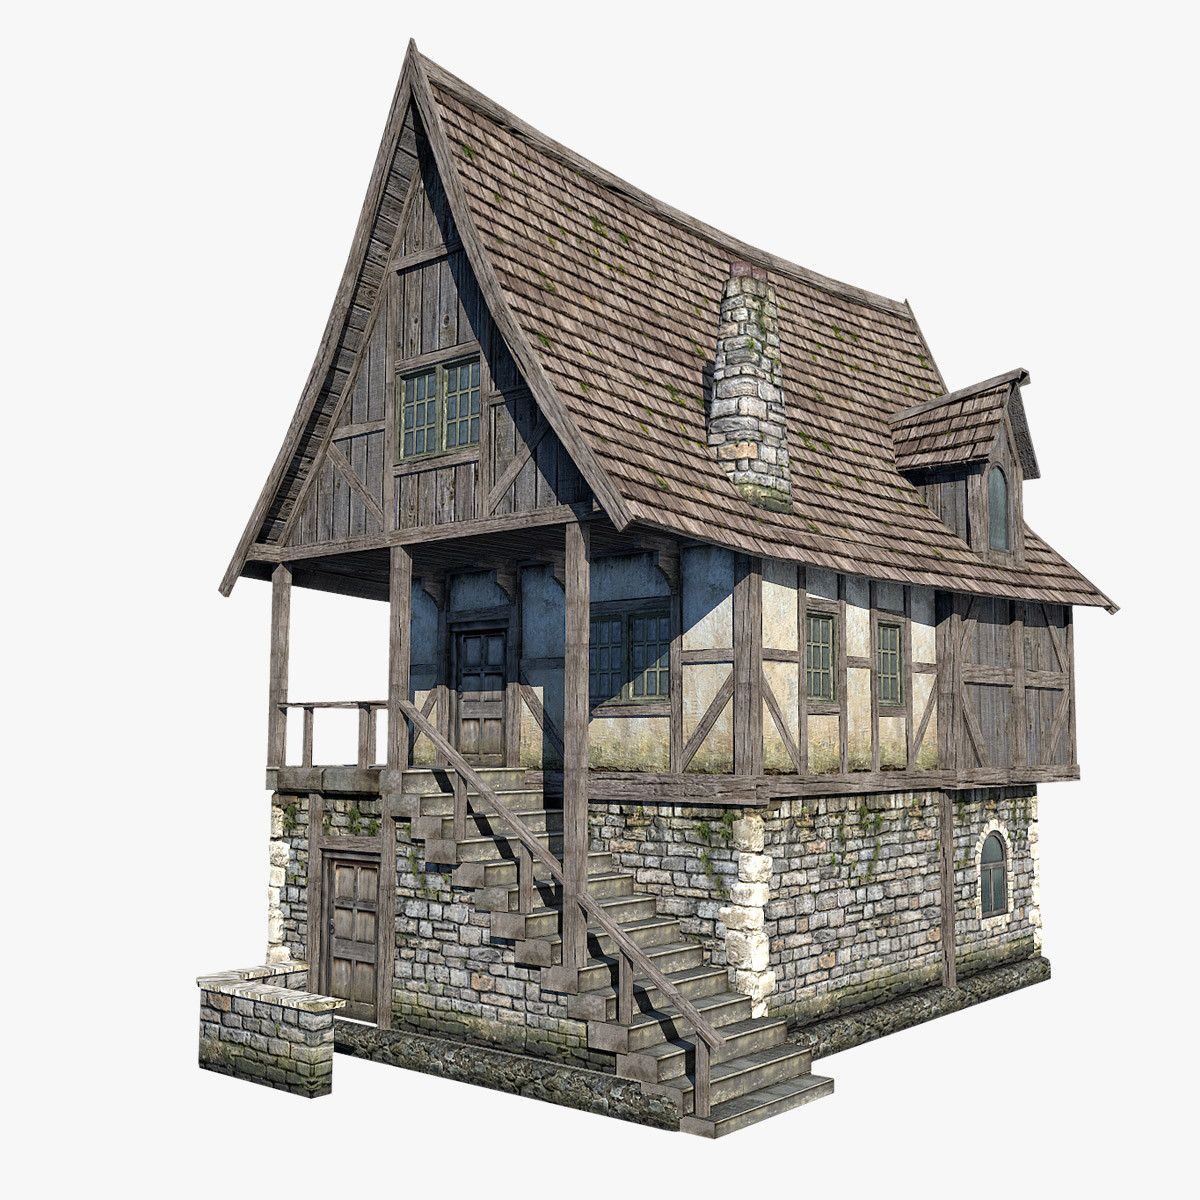 Low poly model of fantasy medieval house http www House 3d model